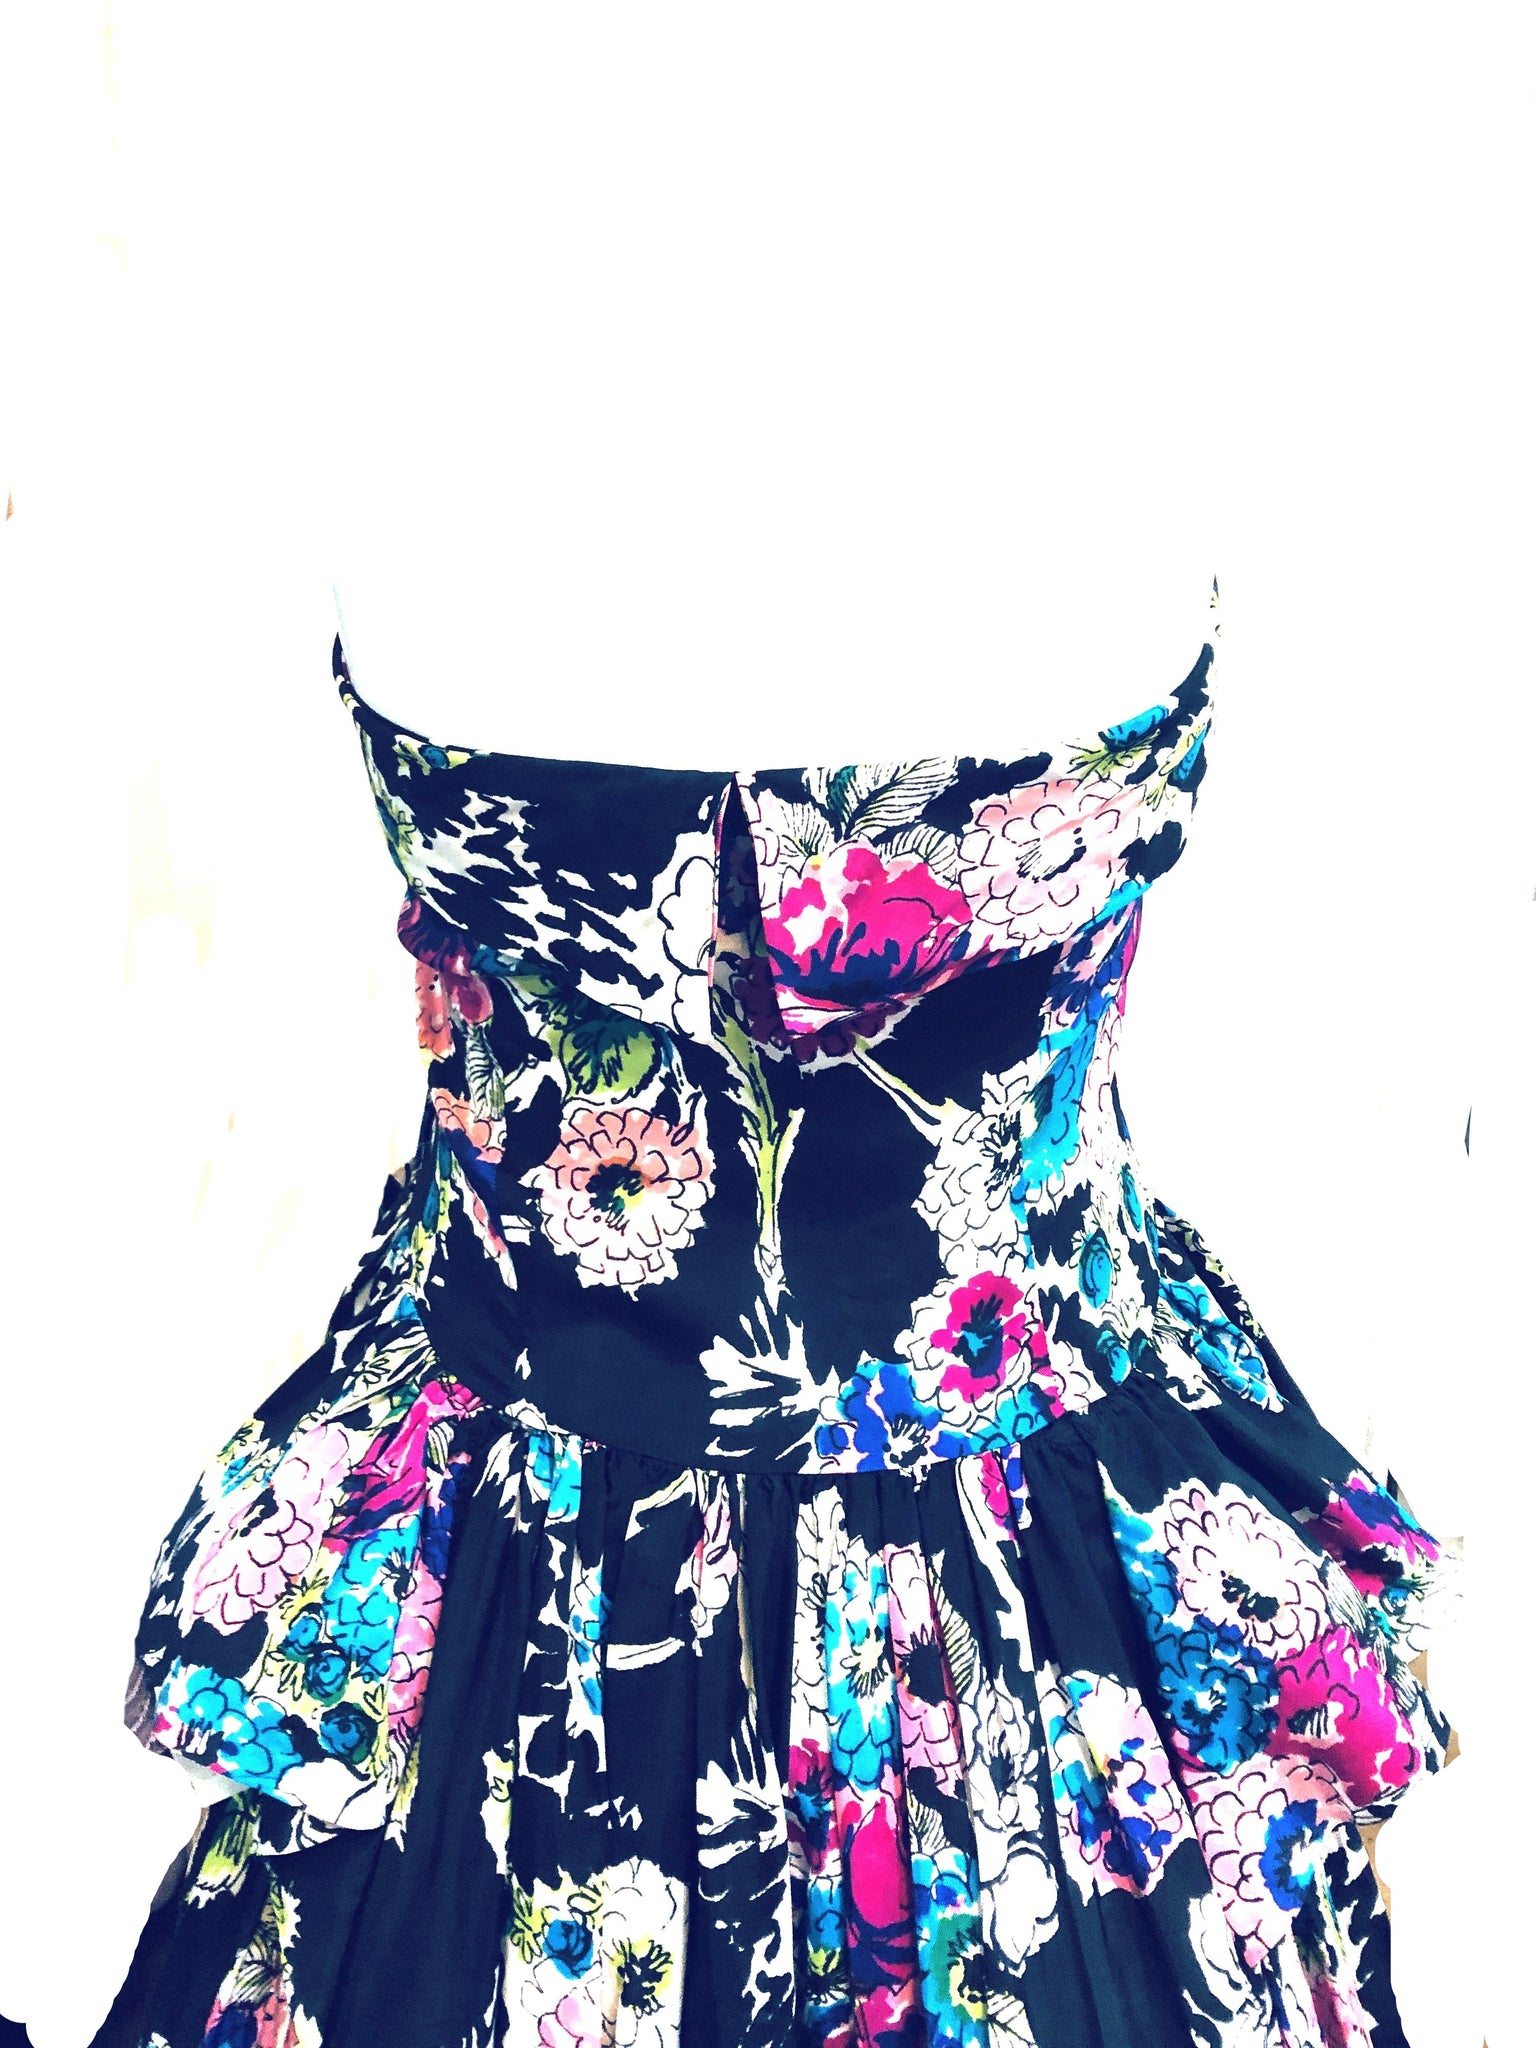 40s Black Floral Halter Gown with Peplum DETAIL 4 of 5